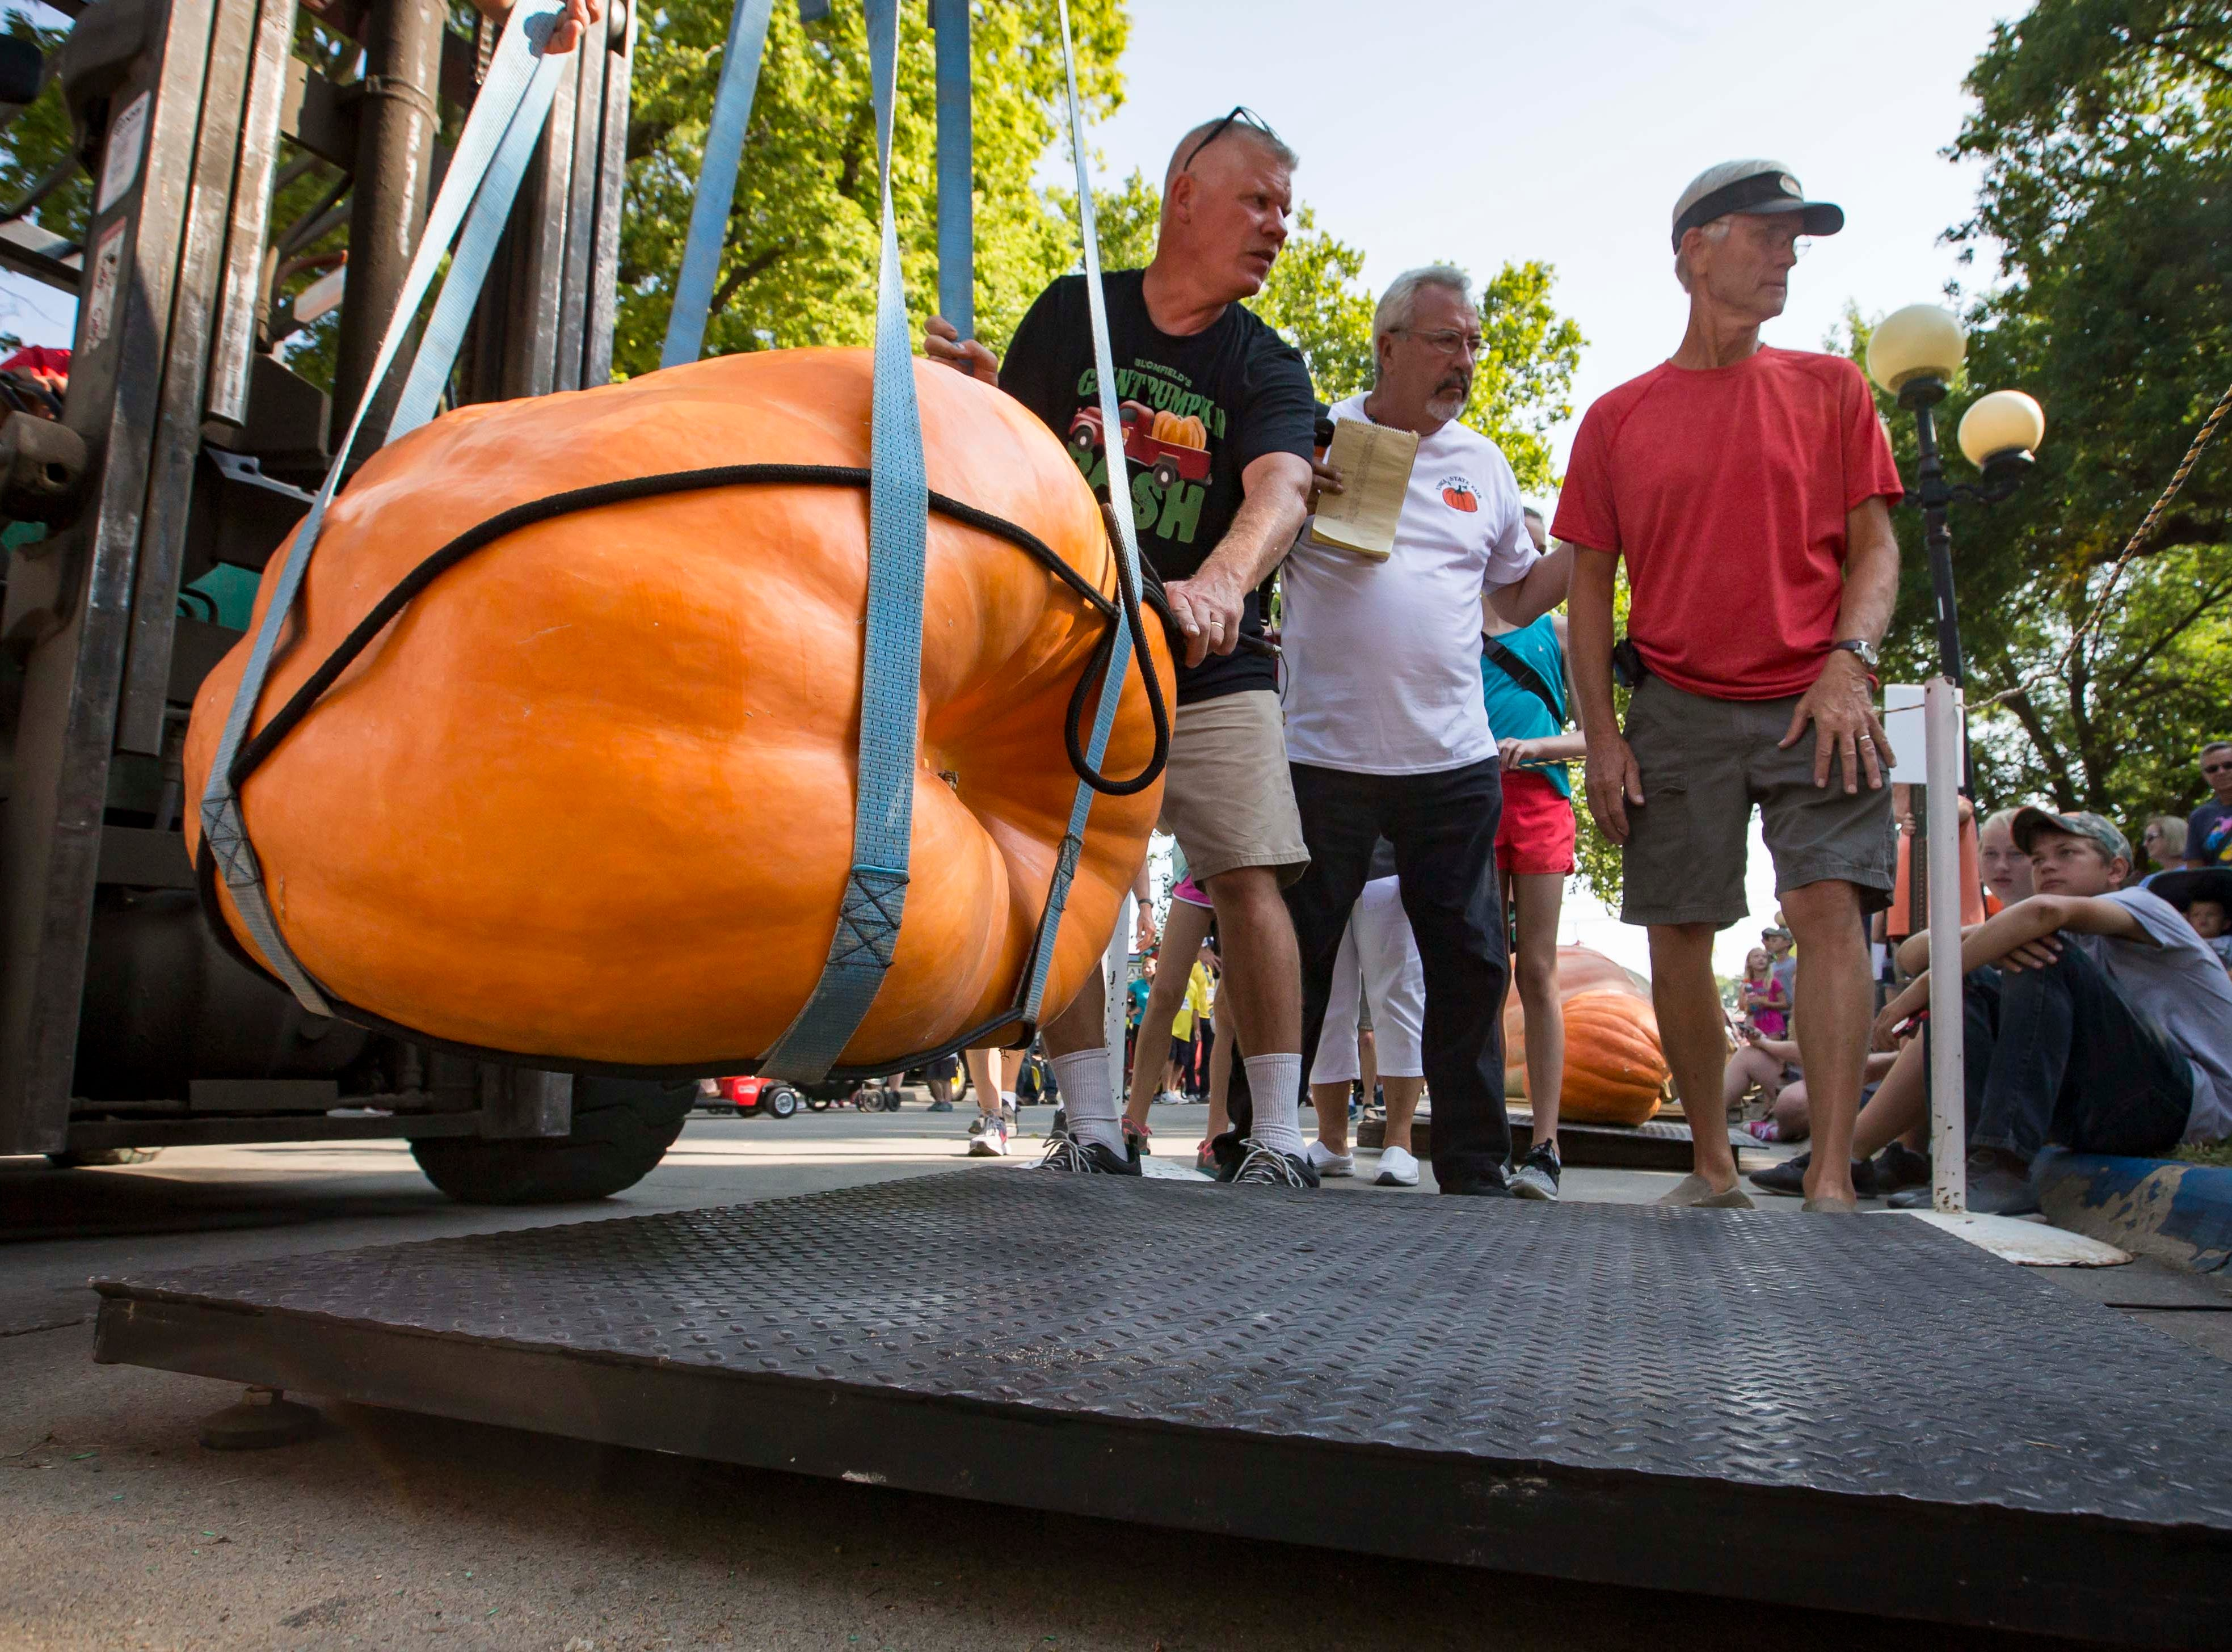 Contestants  wait for their pumpkin to be weighed during the Big Pumpkin contest at the Iowa State Fair Friday, Aug. 10, 2018, in Des Moines, Iowa.